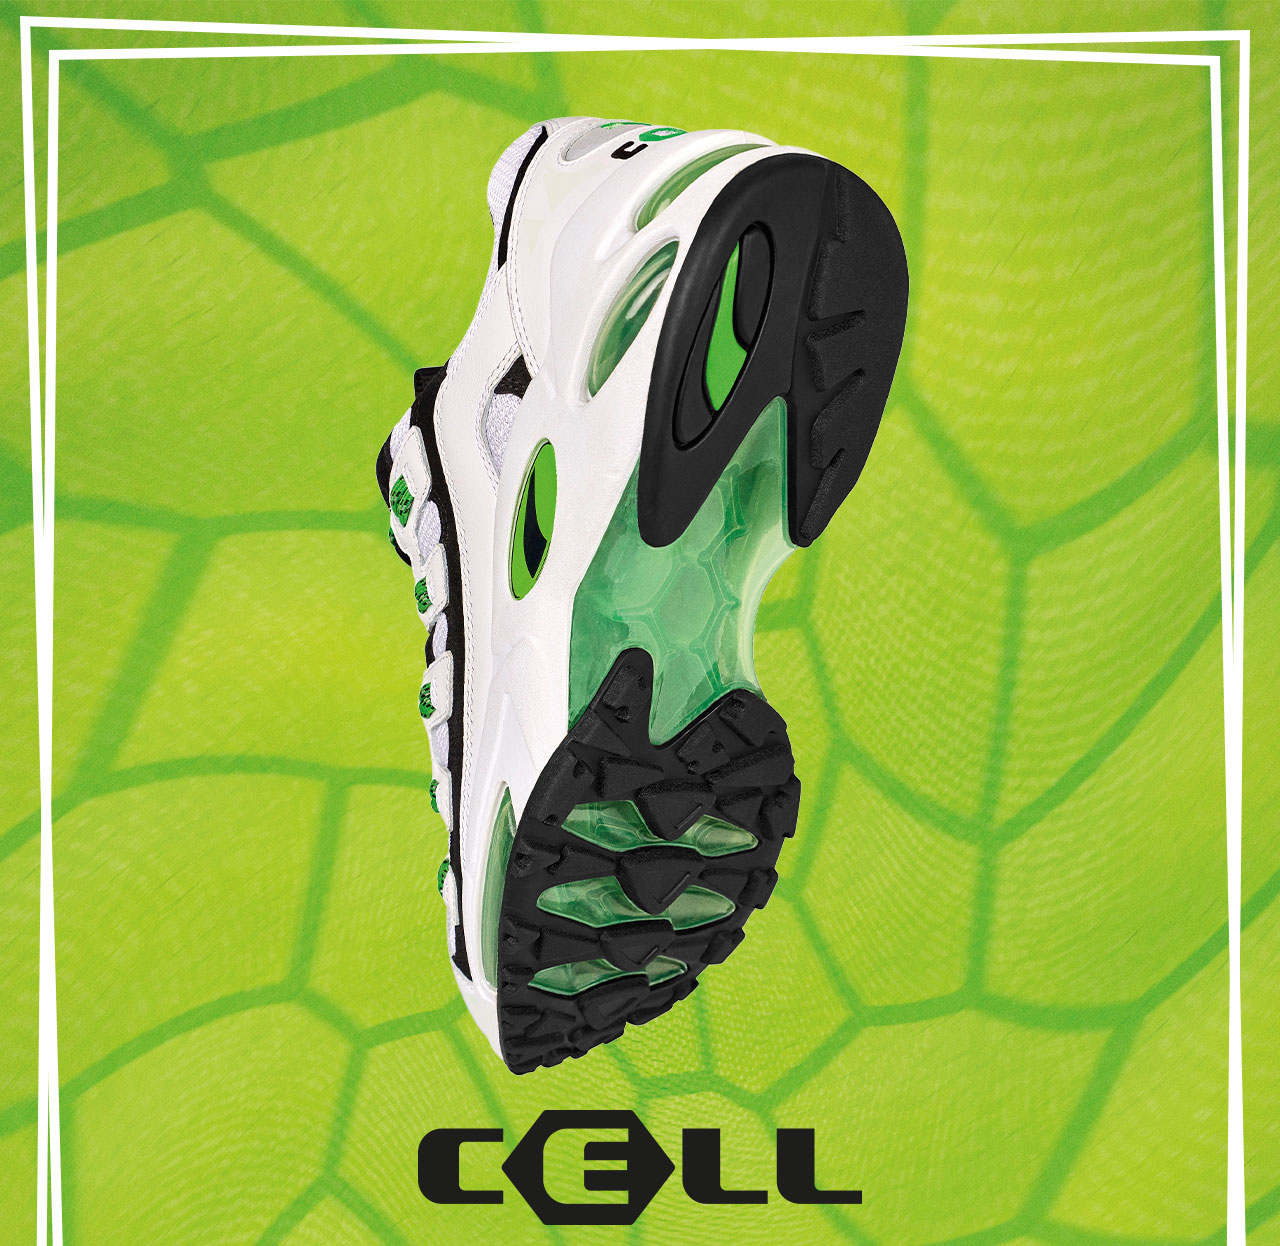 Puma: CELL. Since '98. | Milled